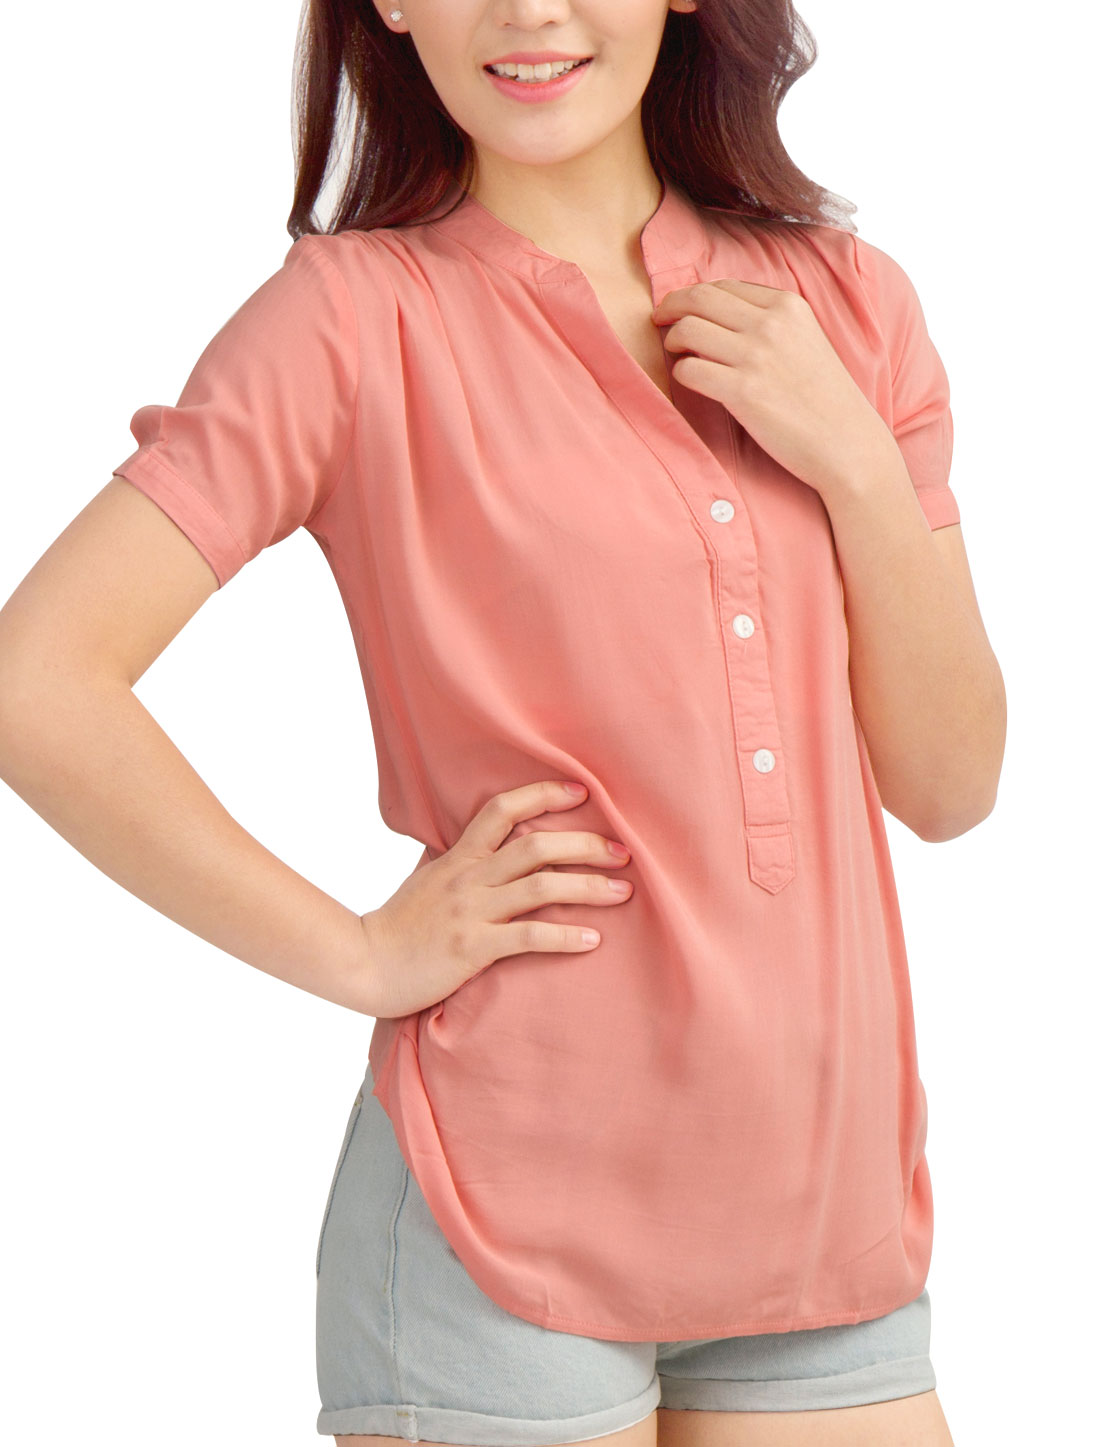 Women Three Buttons Closed V Neckline Stylish Top Shirt Pink S